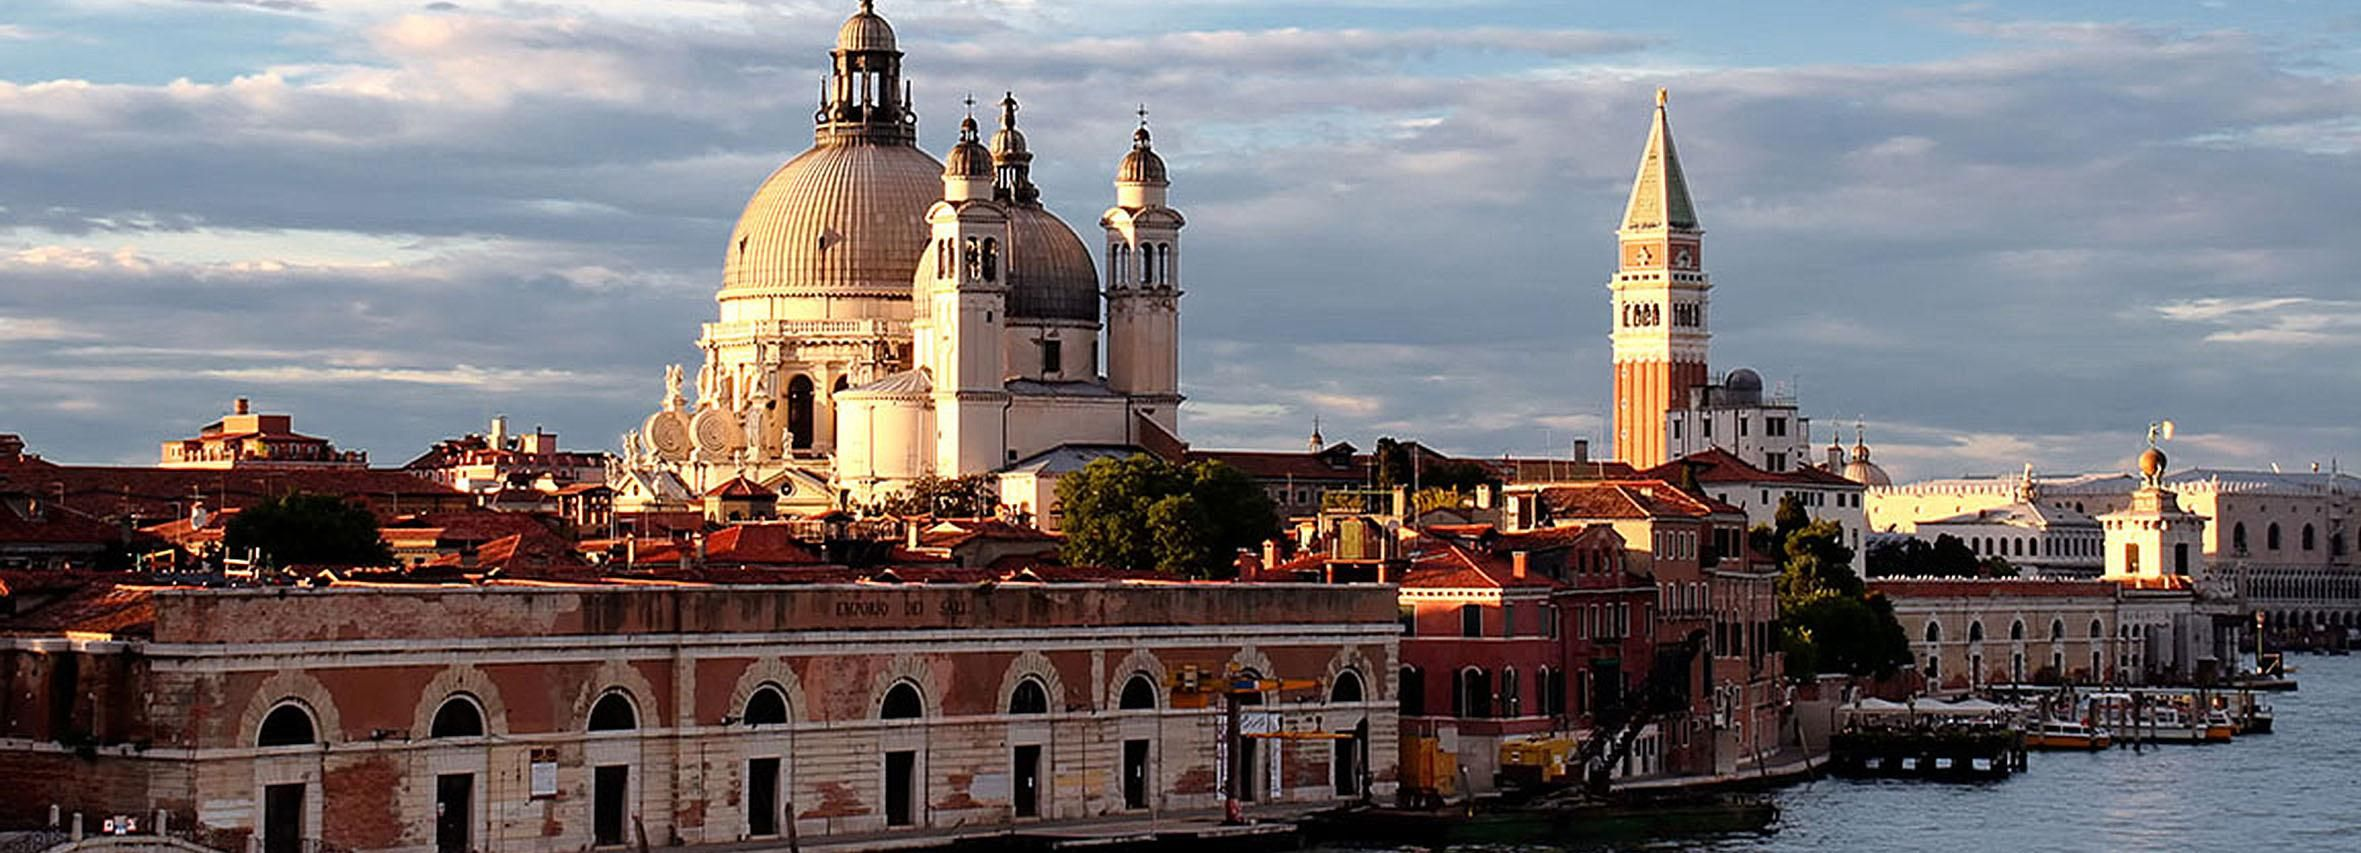 From Milan: Full-Day Venice Self-Guided Excursion